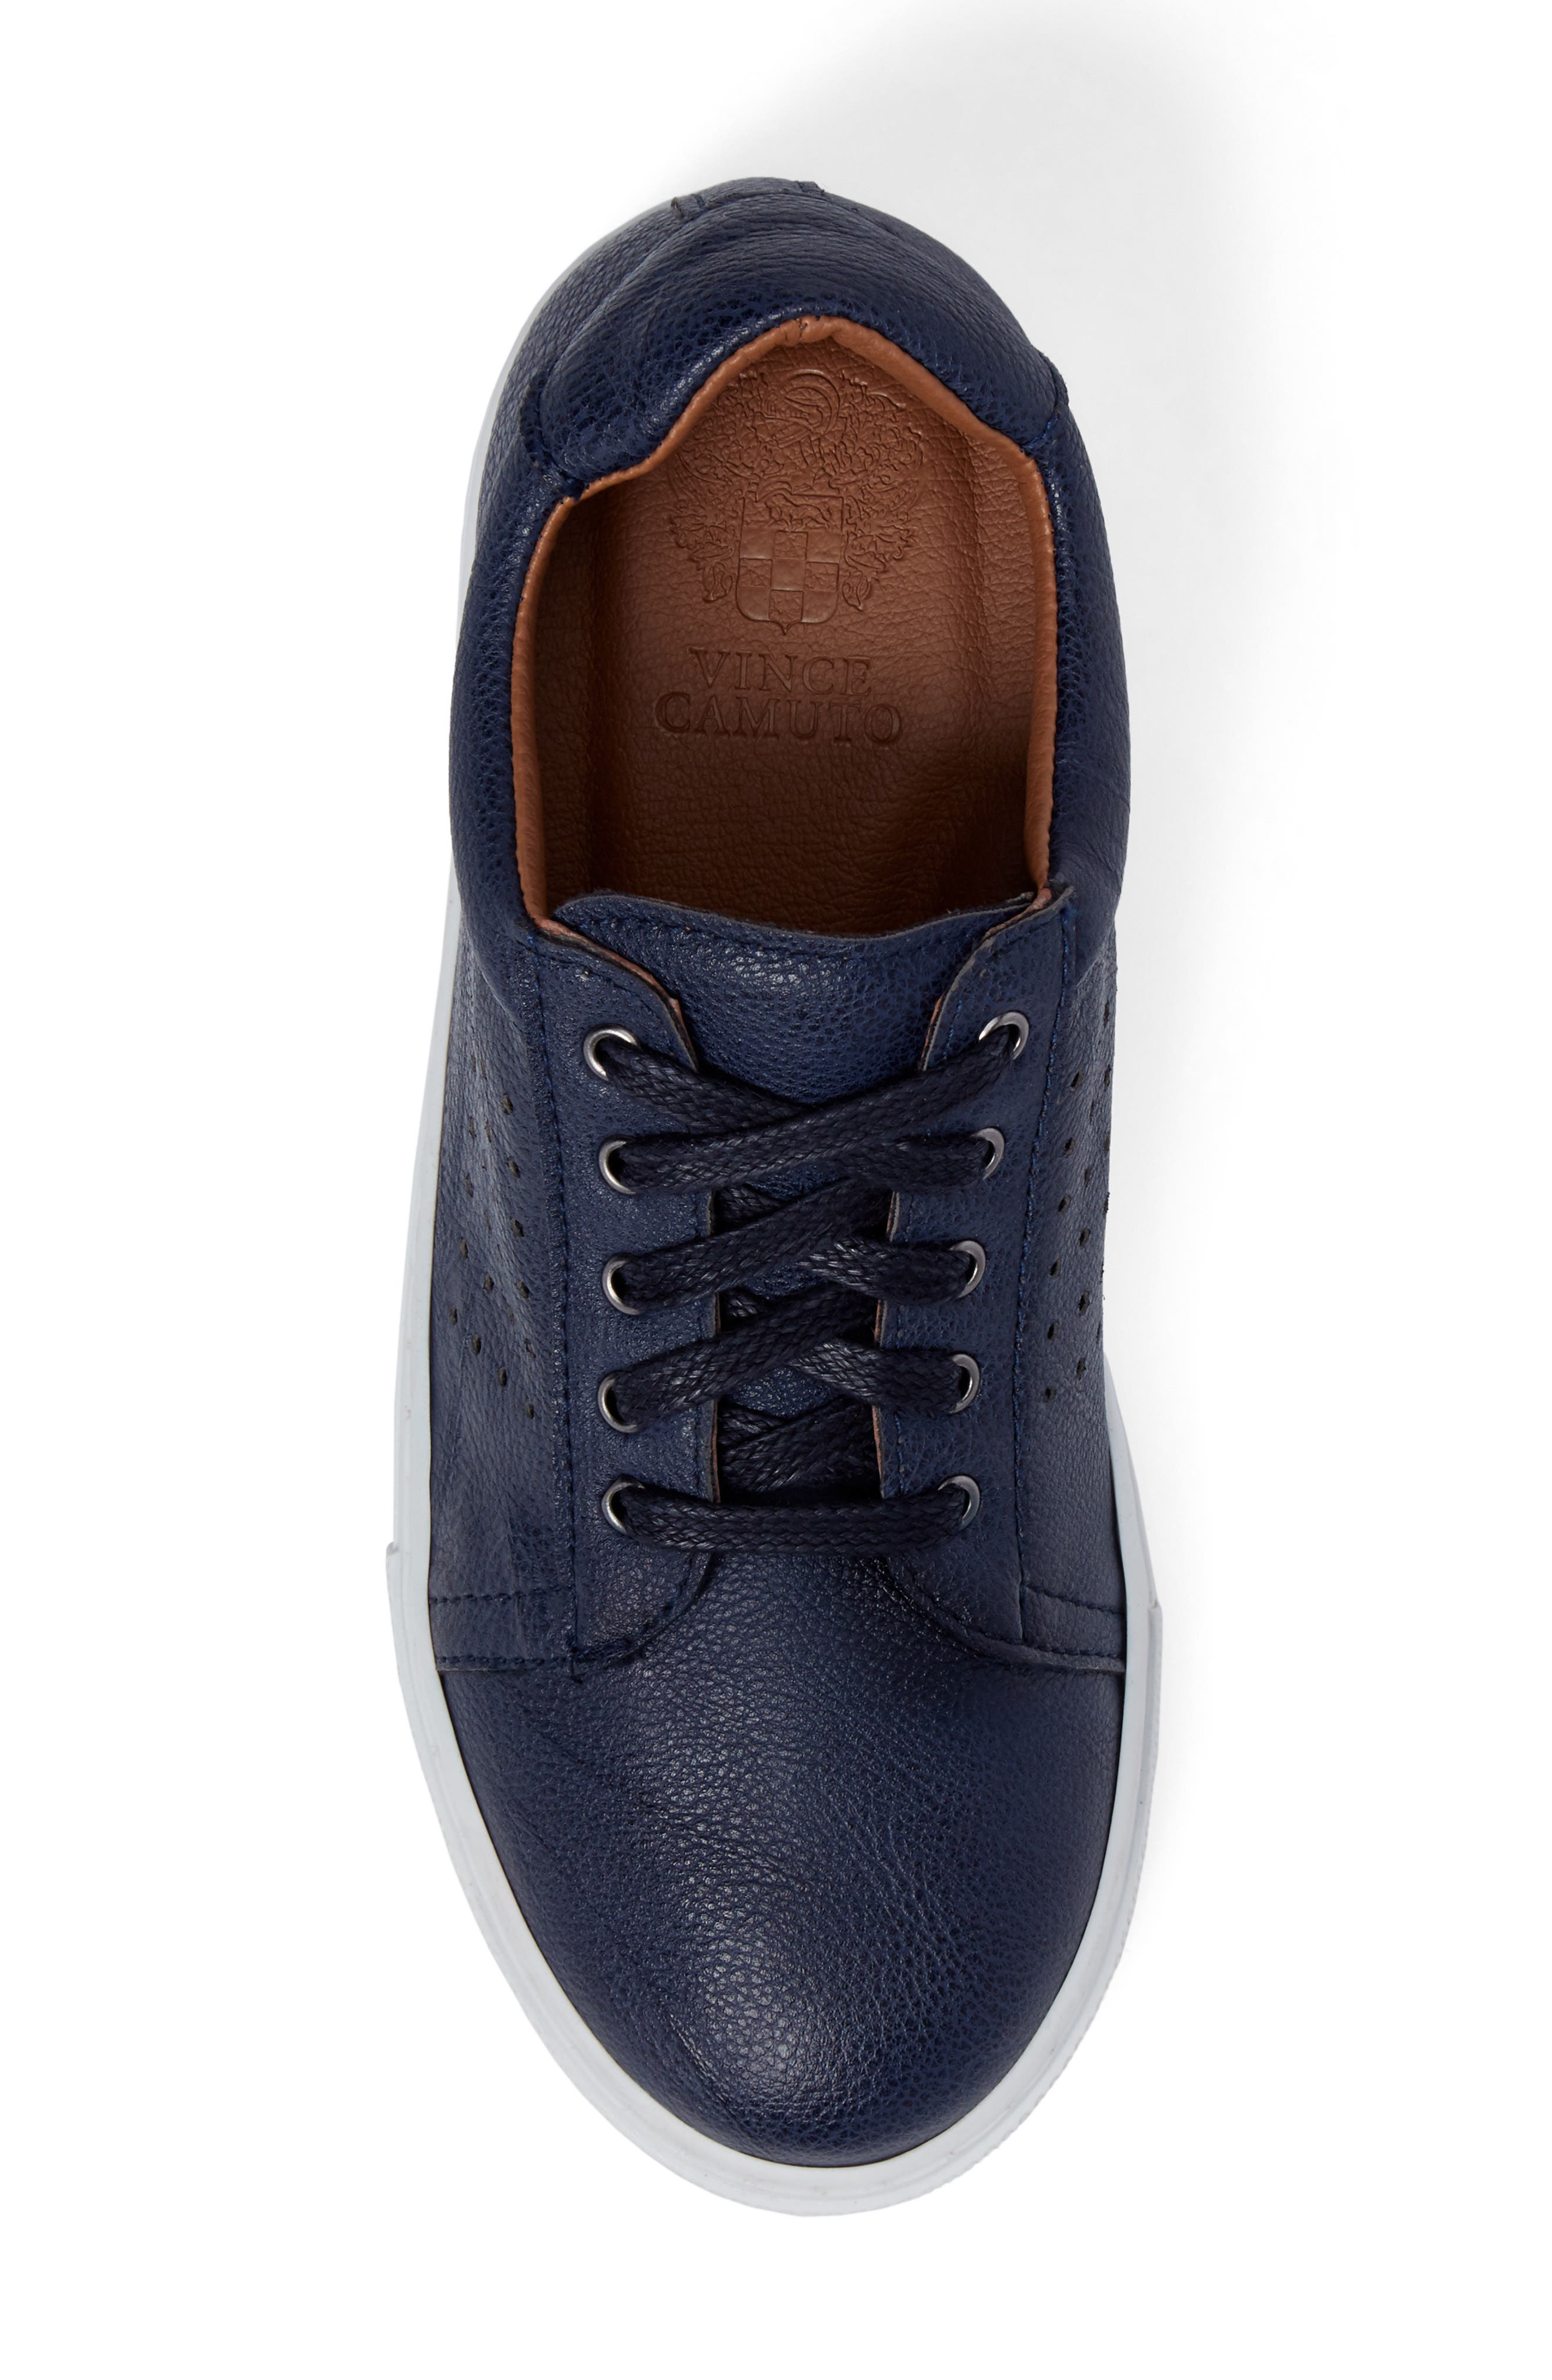 Grafte Perforated Sneaker,                             Alternate thumbnail 5, color,                             Navy